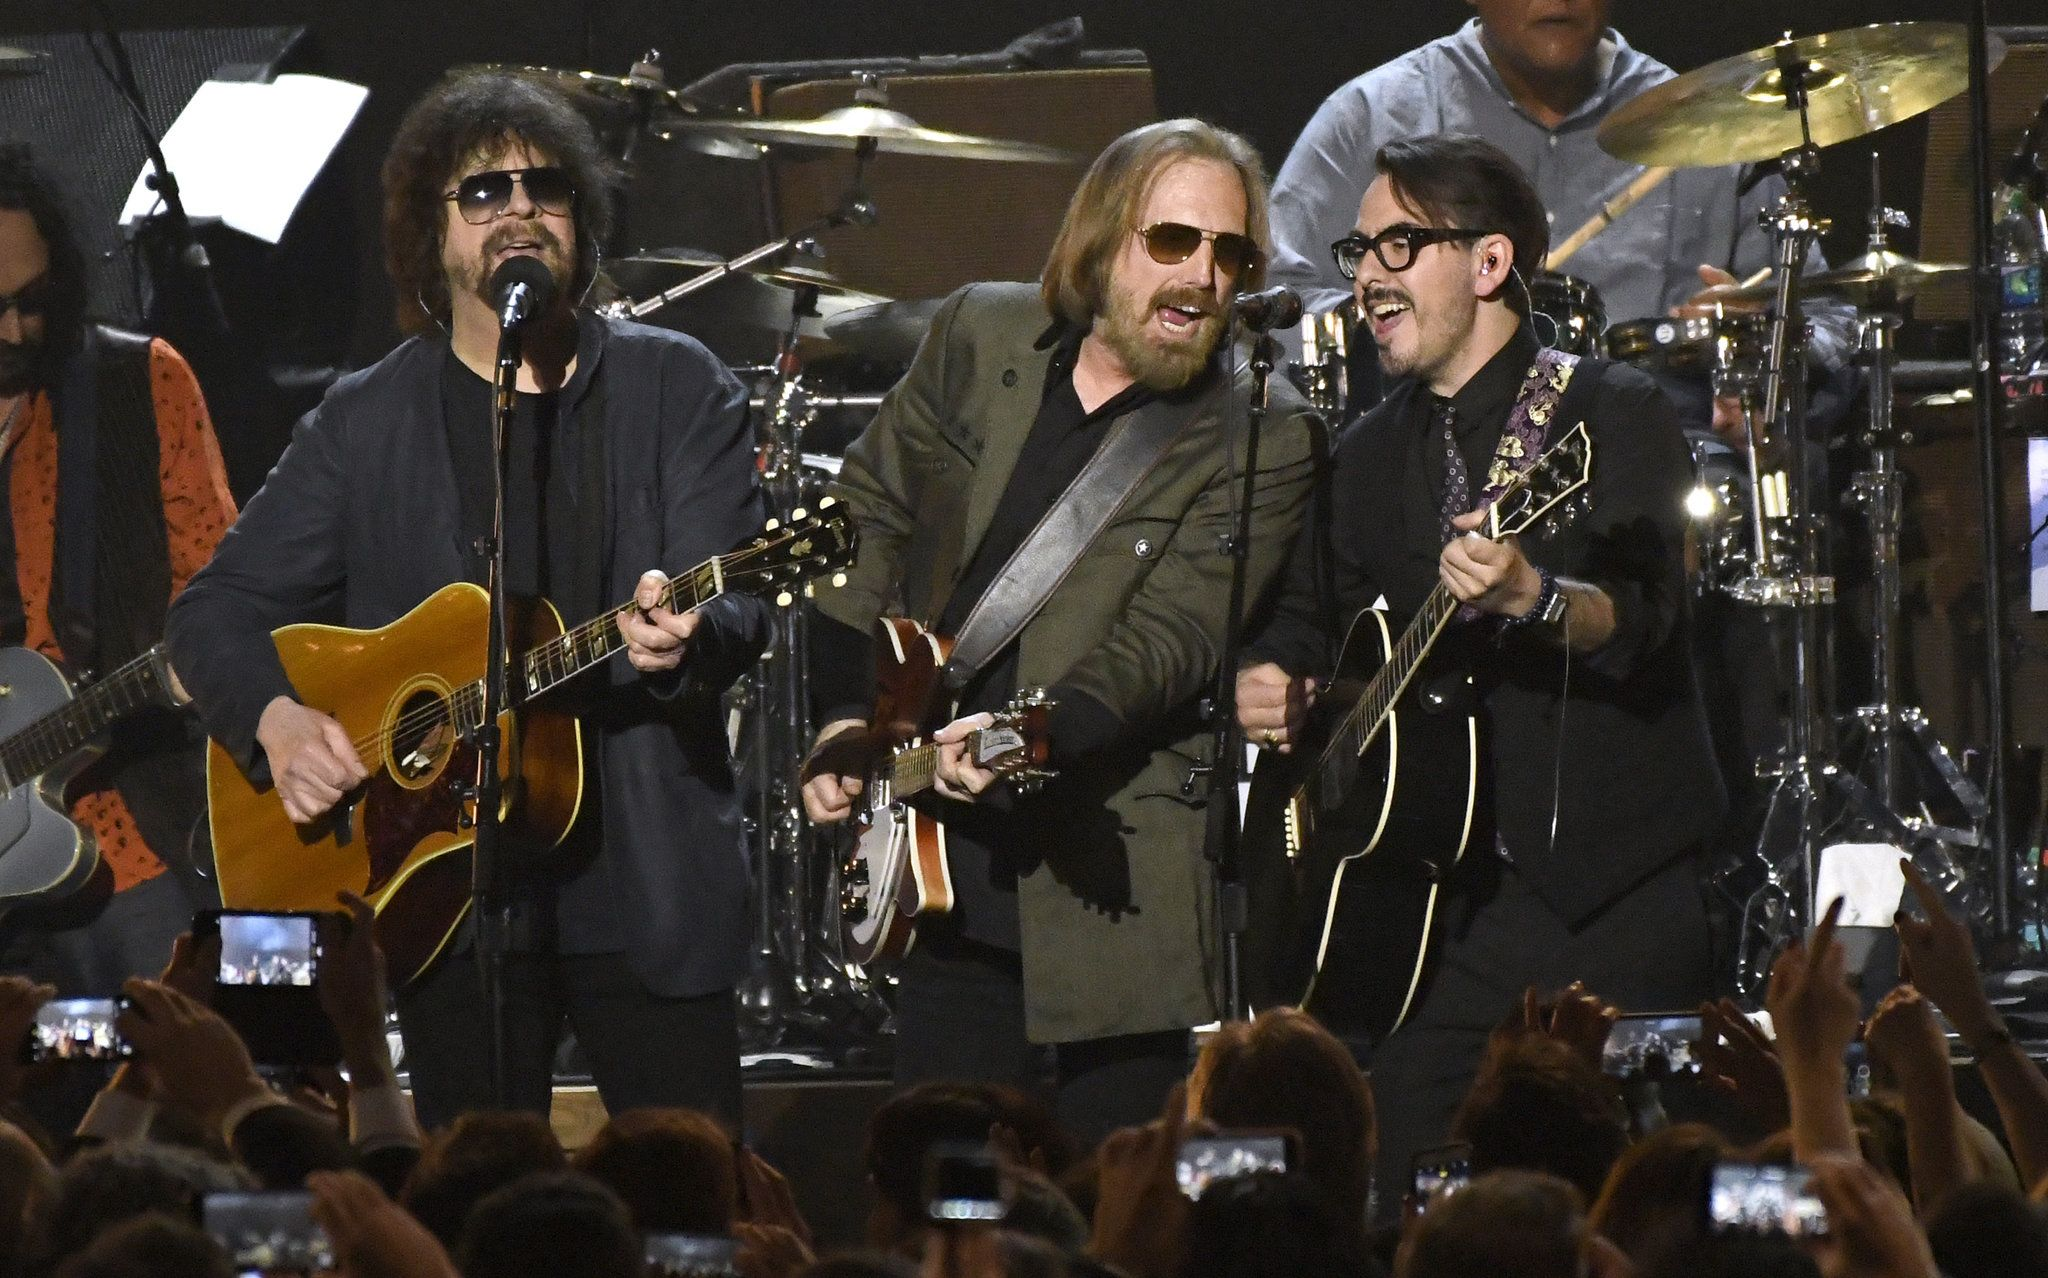 Are the traveling wilburys rock roll hall of fame worthy